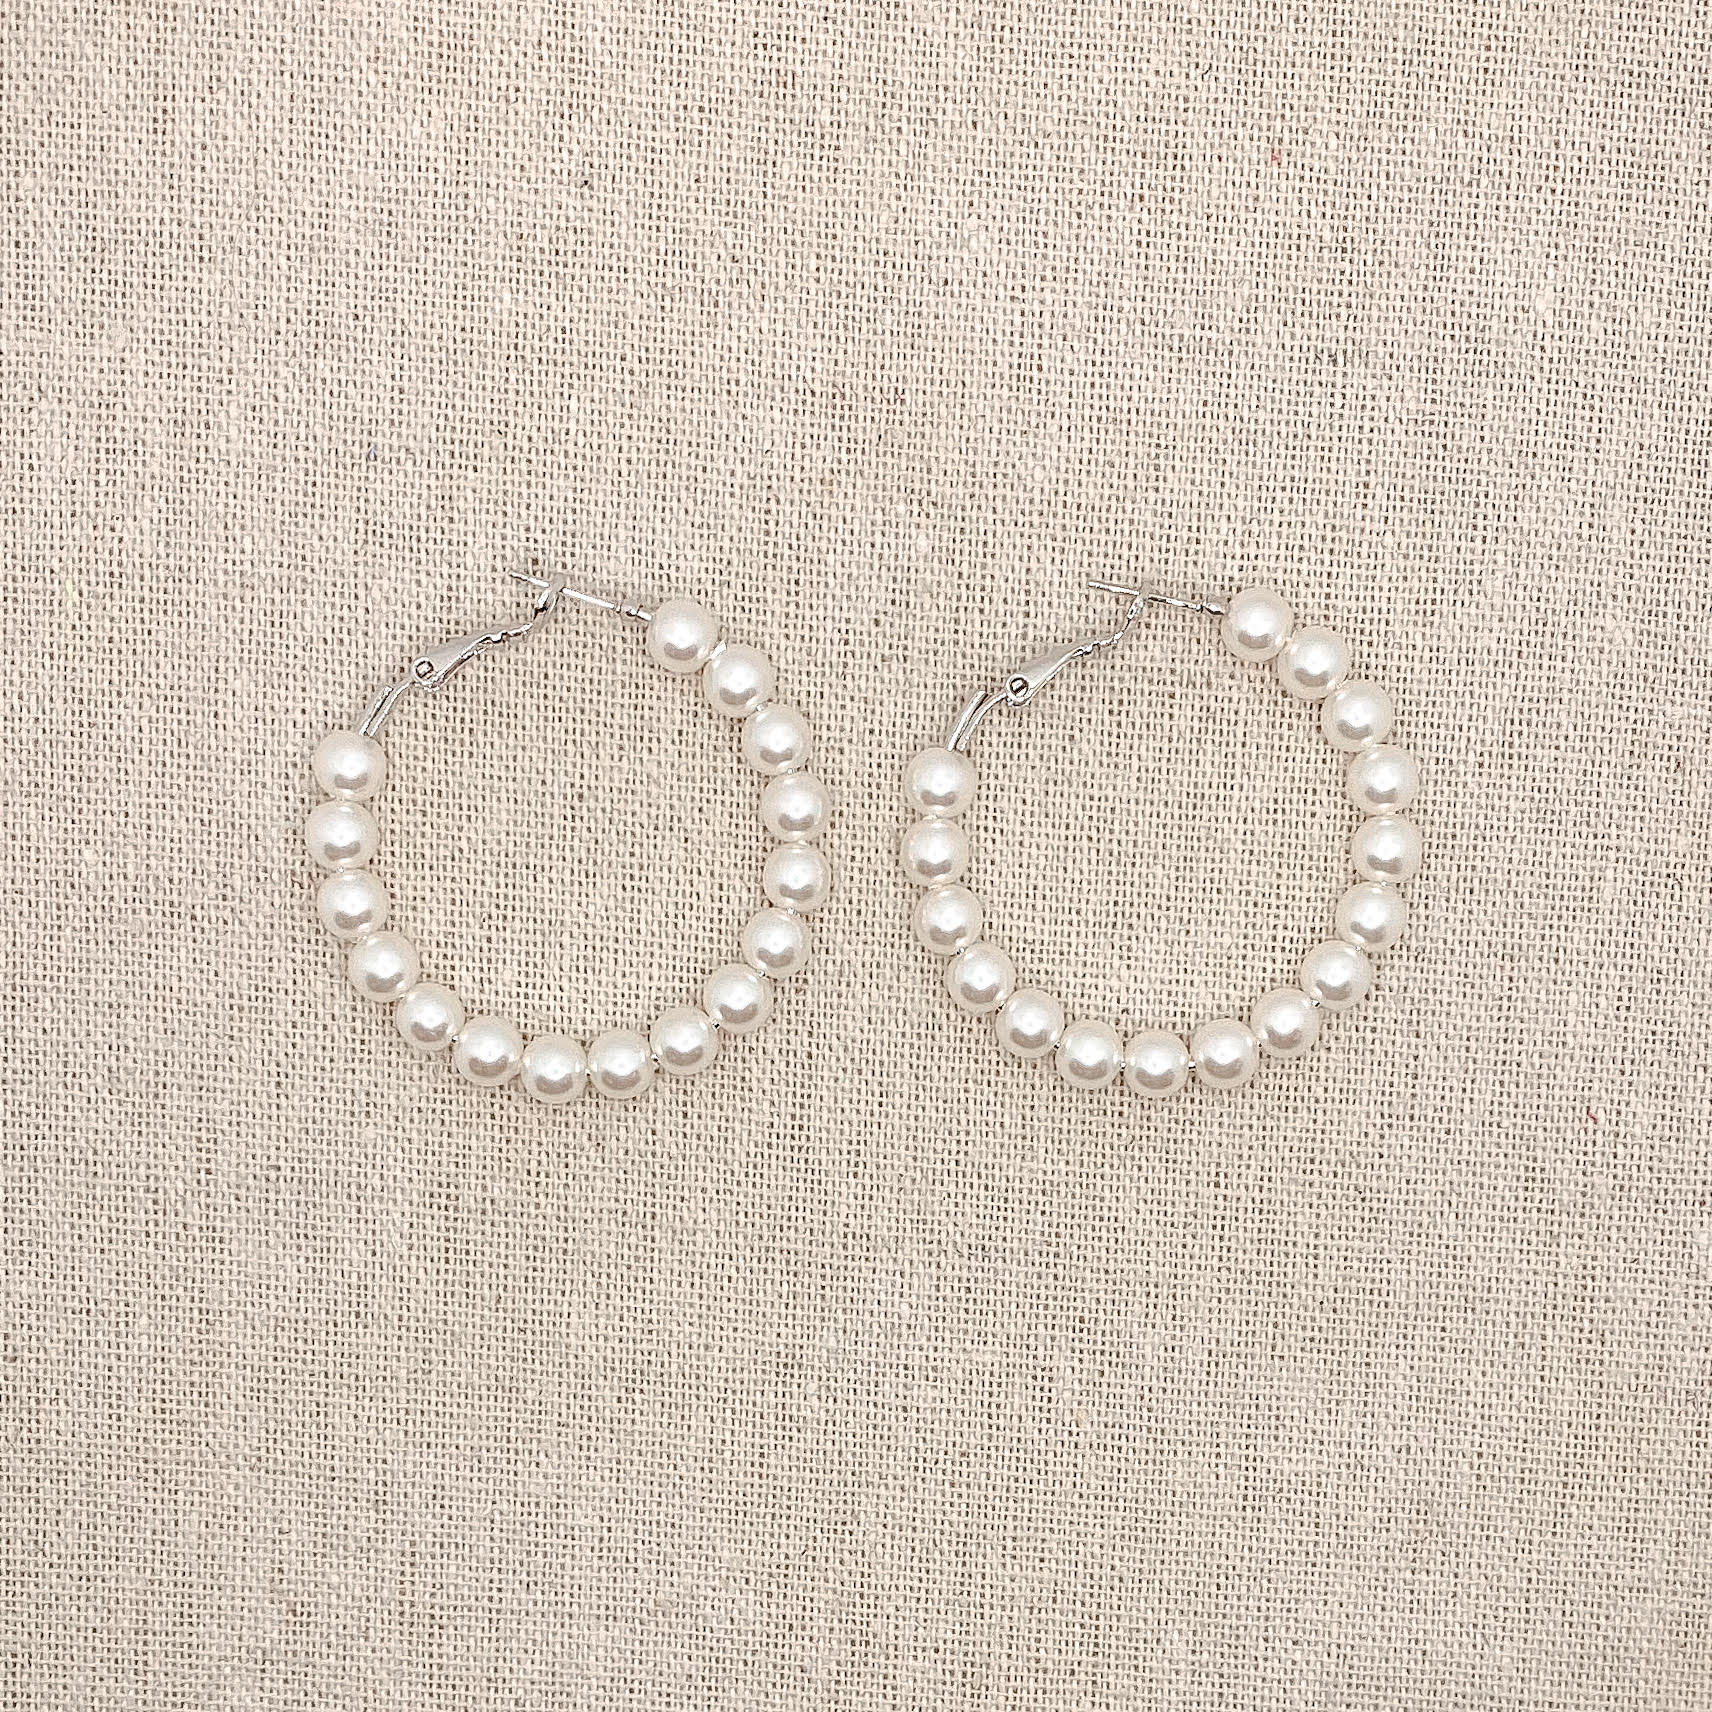 Pearl Hoop Earrings 45mm Silver